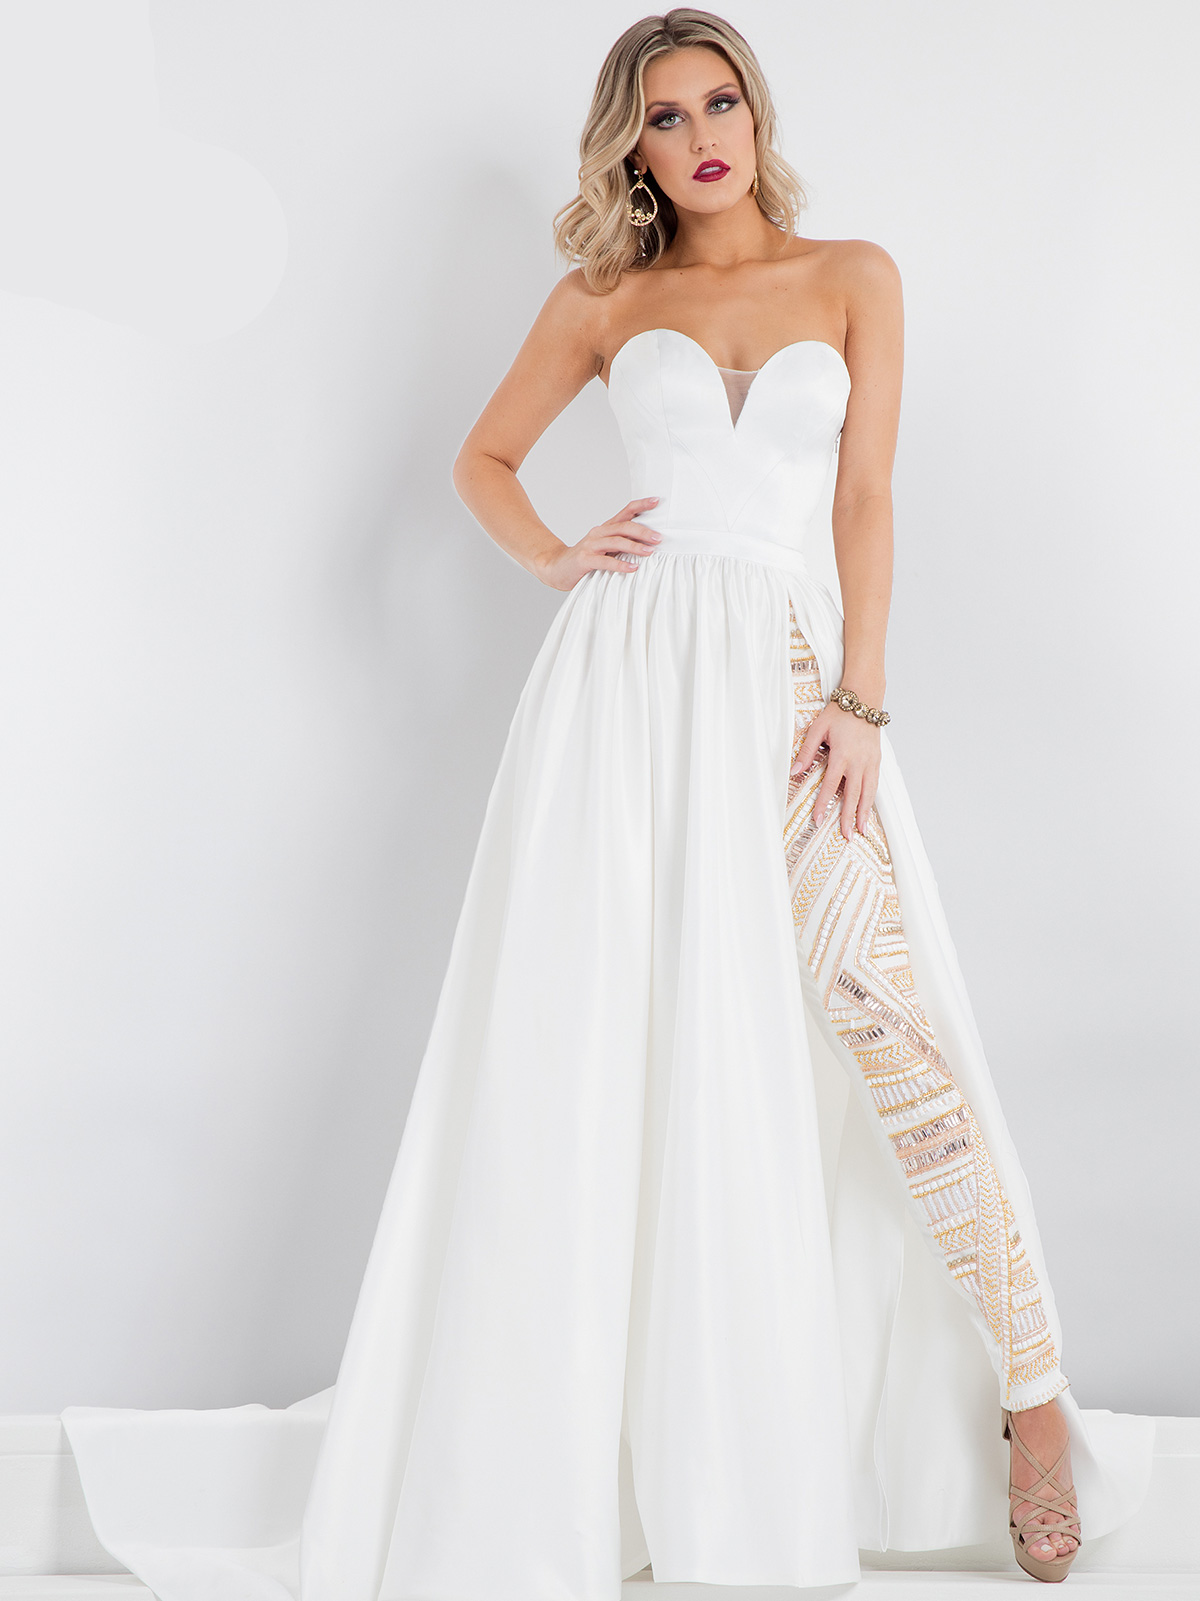 Winning Pageant Gowns | PageantDesigns.com